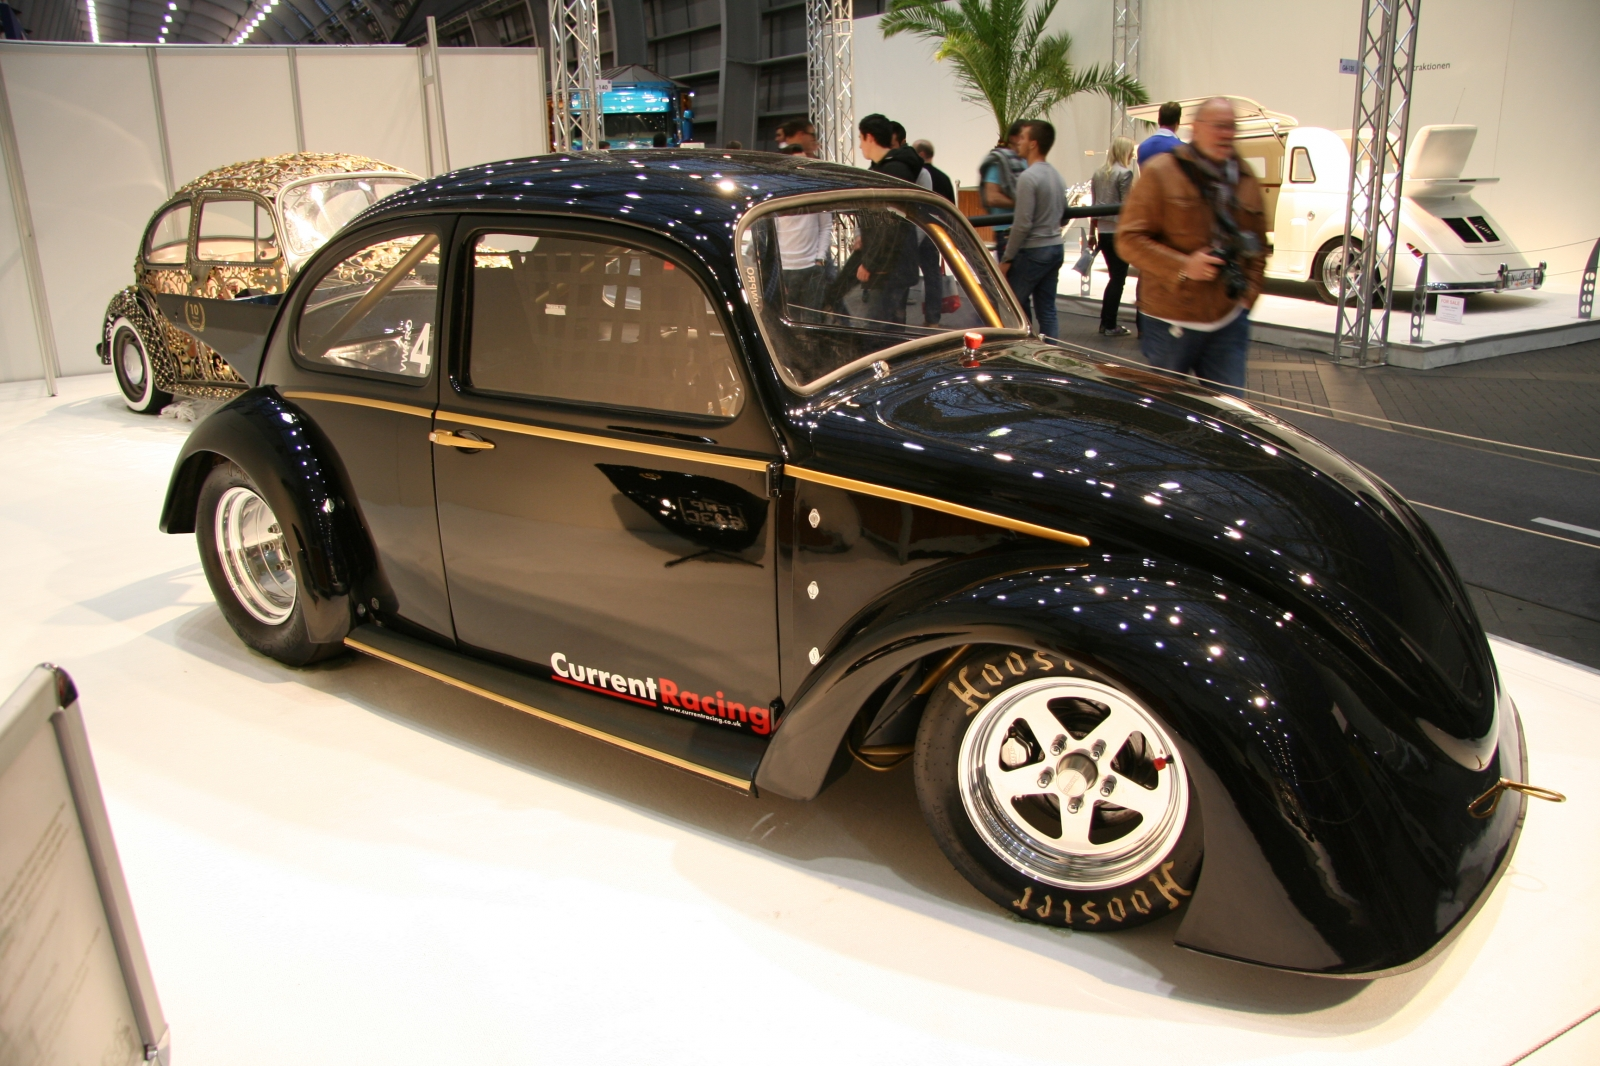 VW Kaefer Black Current III